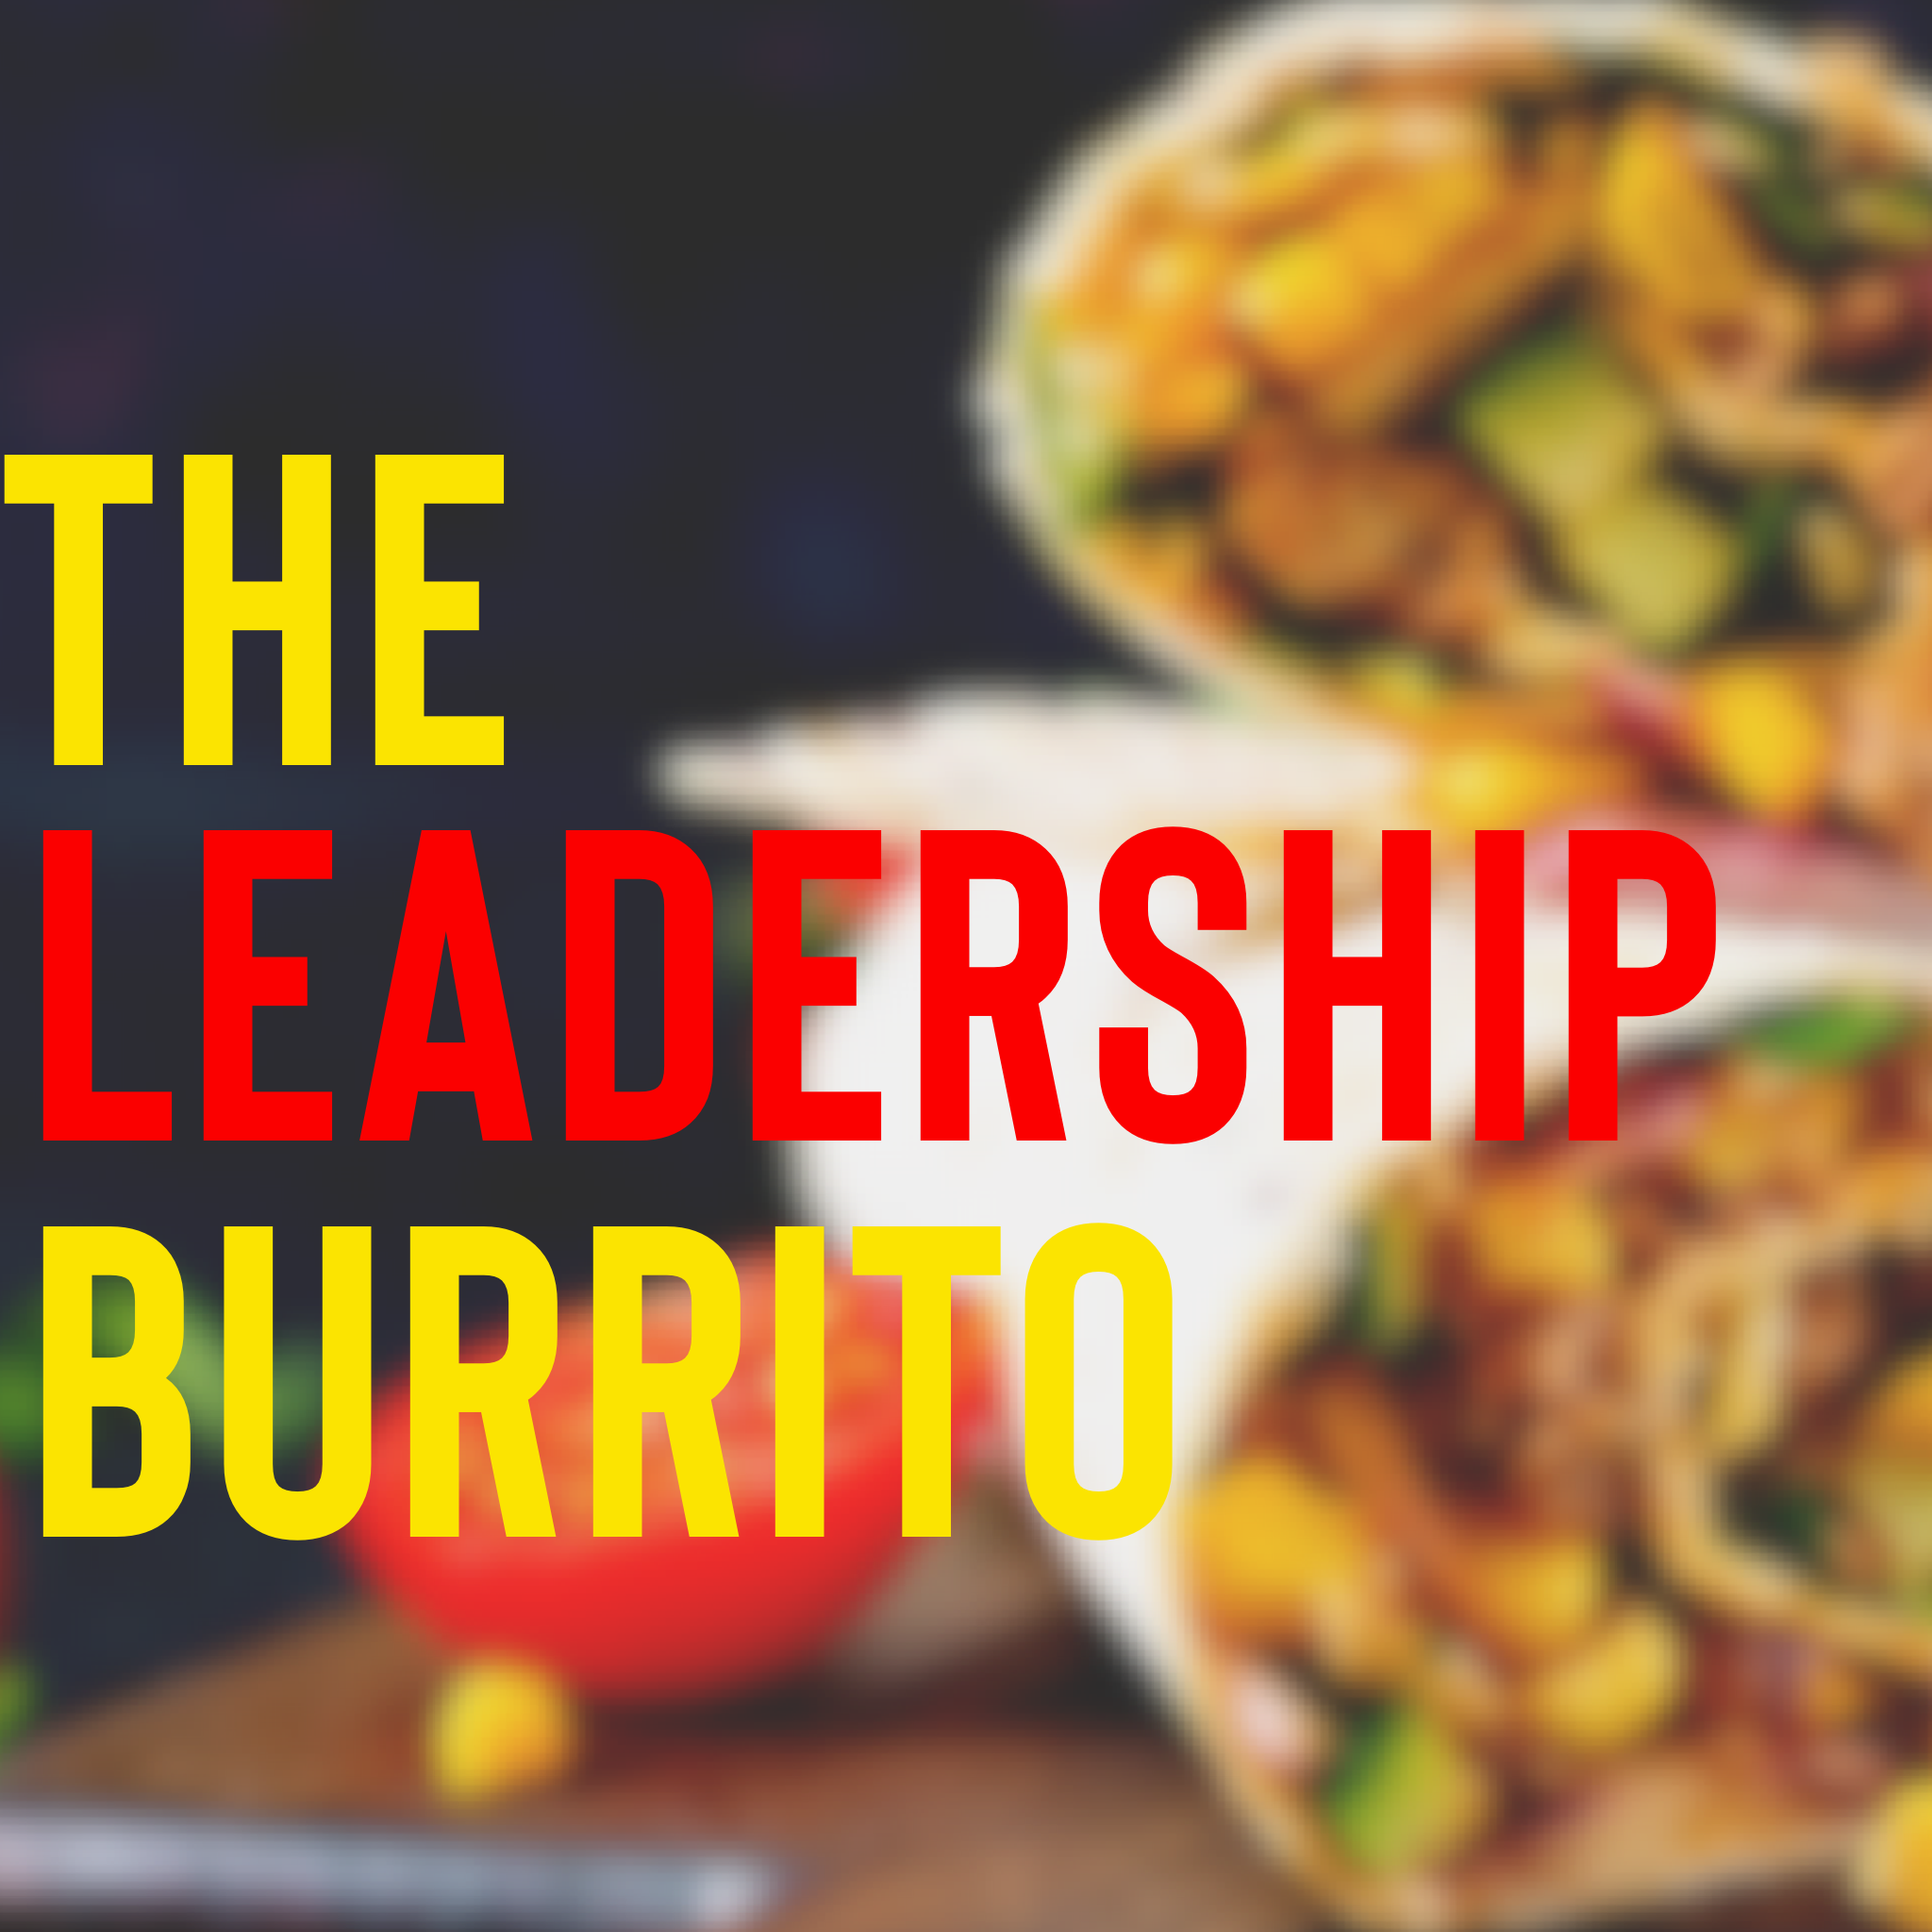 The Leadership Burrito album art